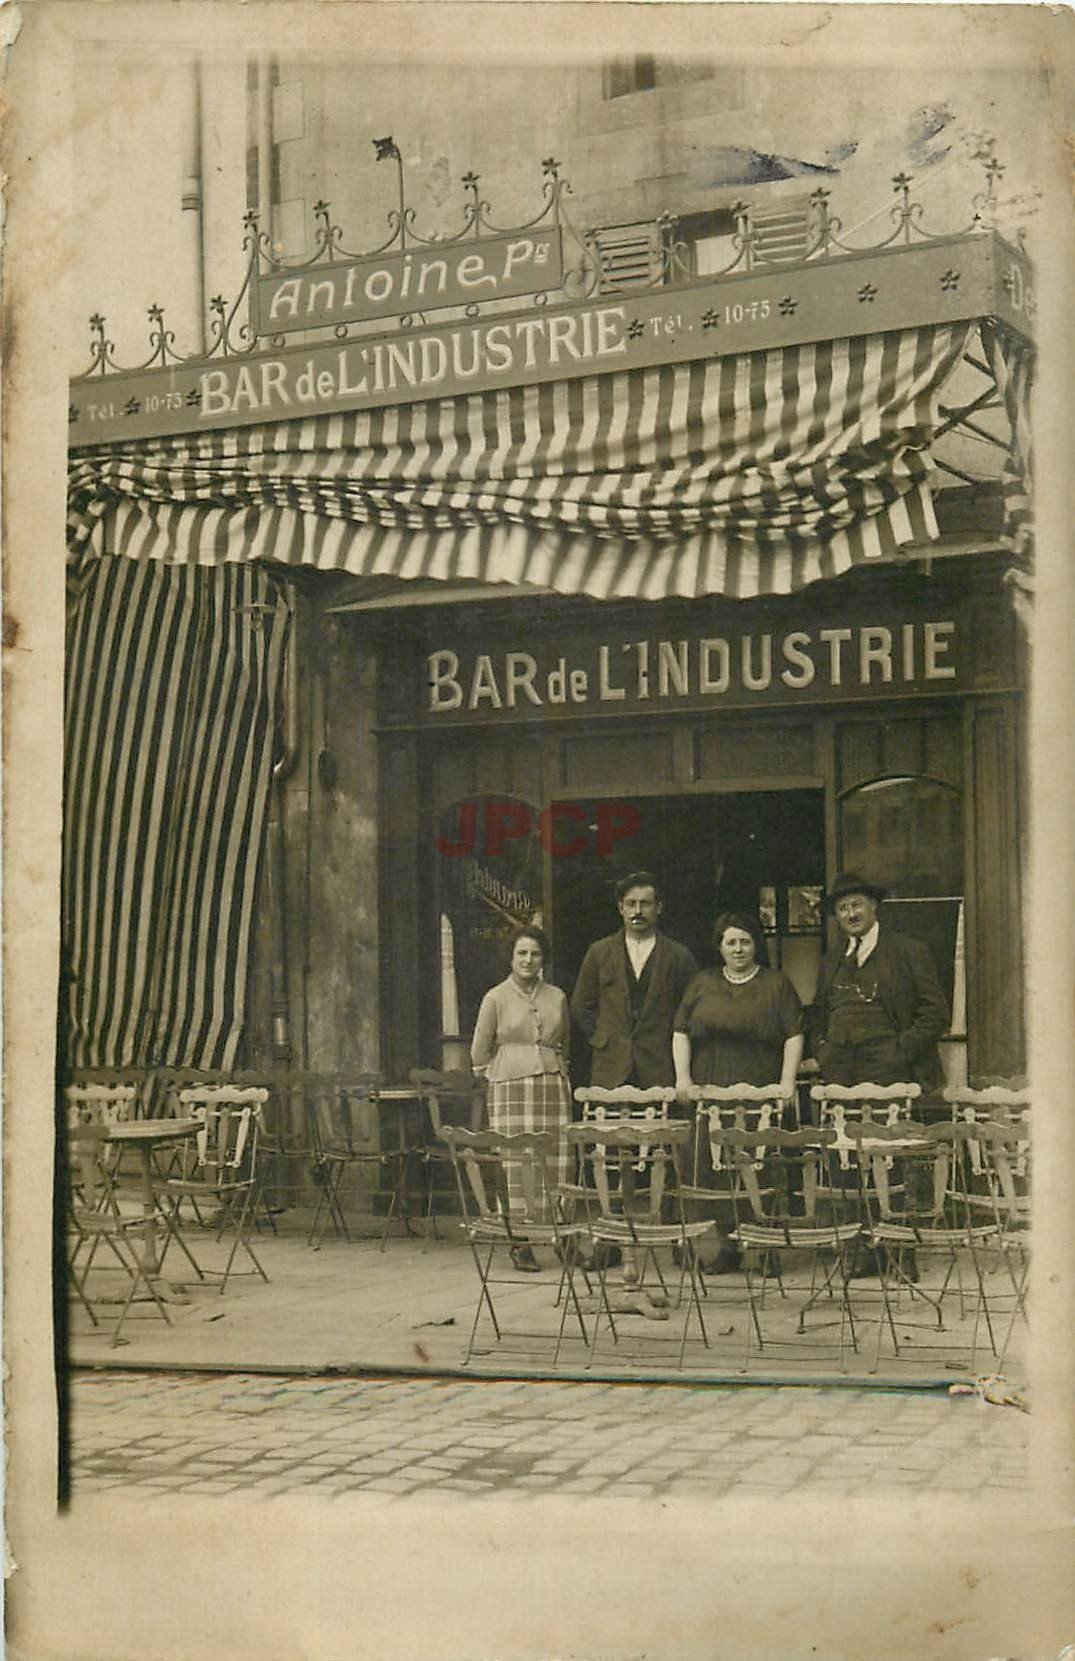 WW 63 CLERMONT-FERRAND. Bar de l'Industrie au 4 Place des Carmes Deschaux. Photo carte postale